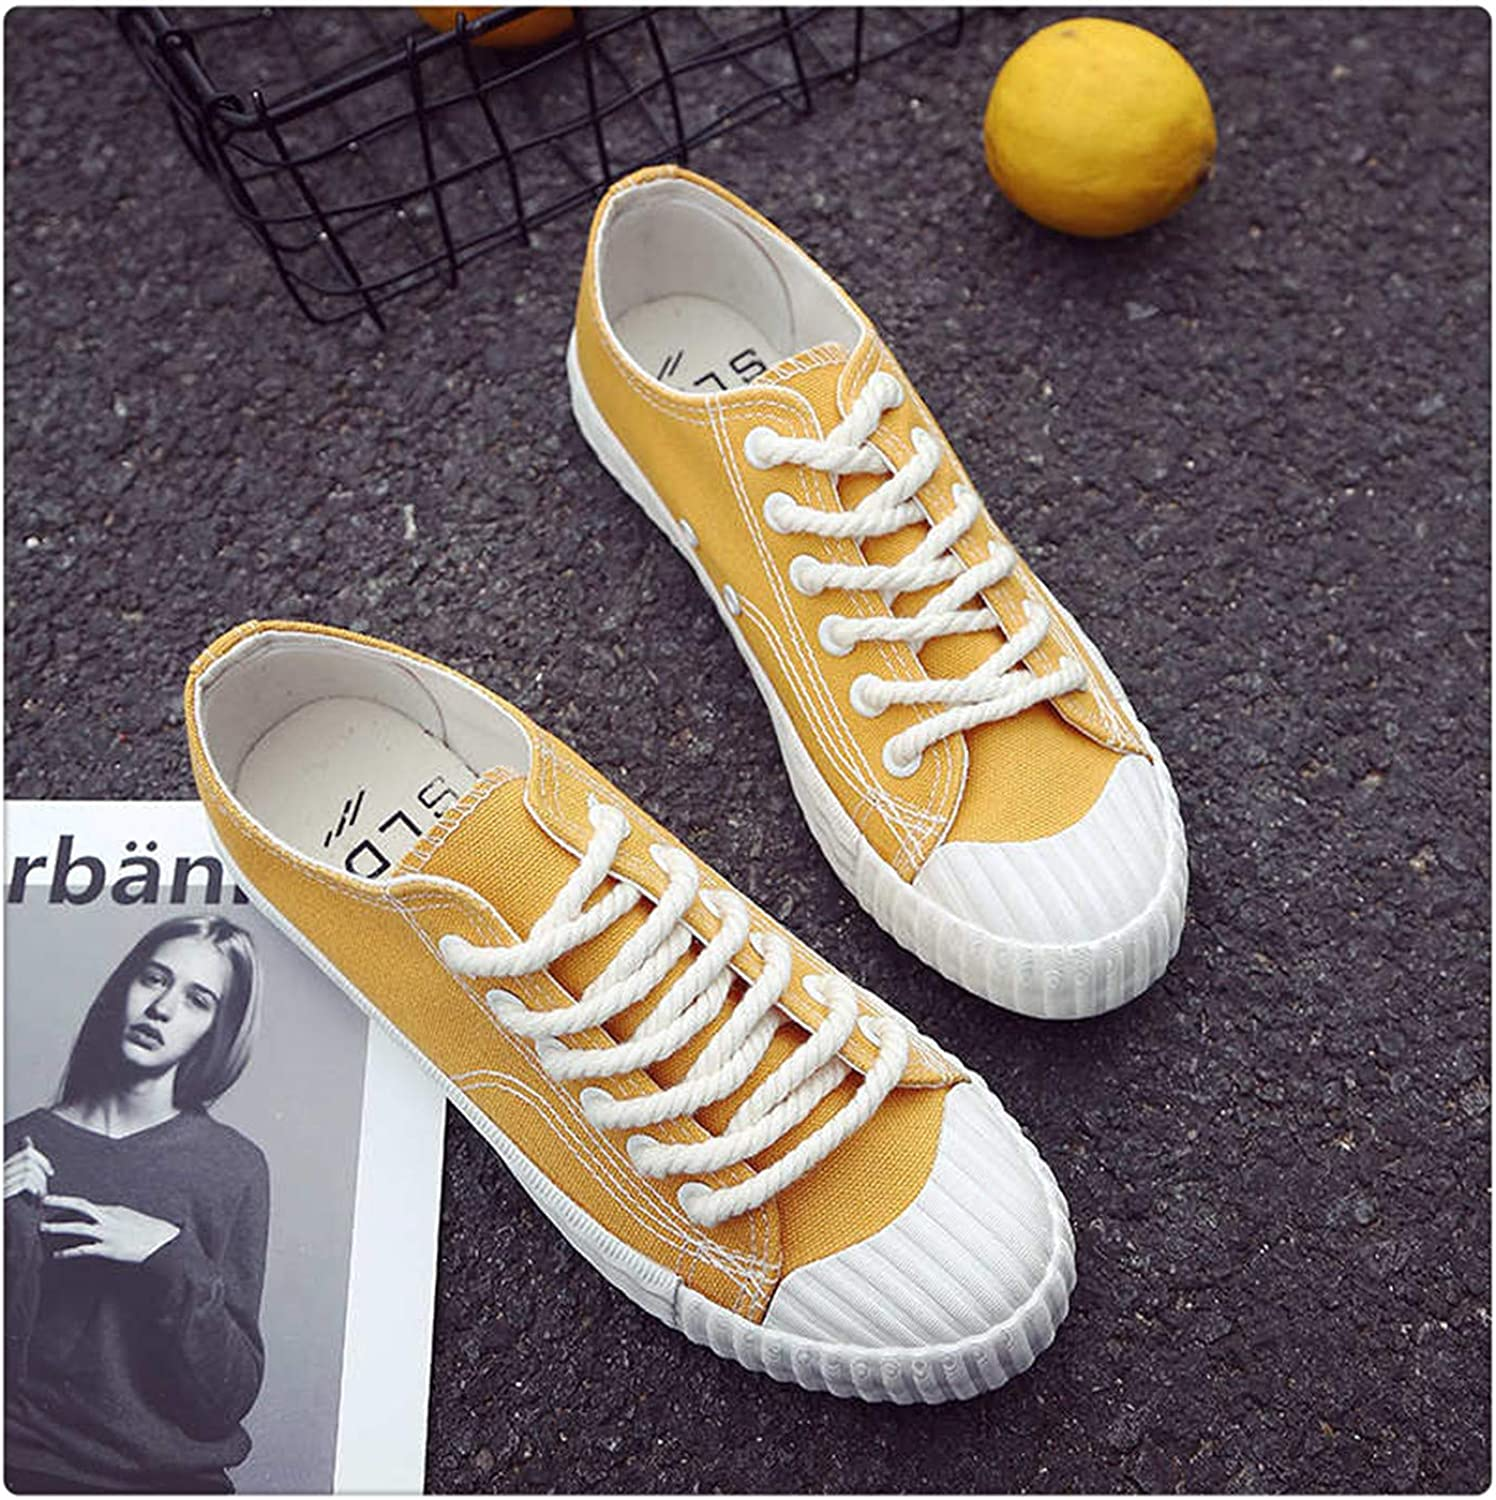 QUGKOP& Candy color Vulcanize Canvas shoes New 2018 Fashion Women Sneakers Casual shoes Breathable Platform Lace Up Trainers Spring Yellow 8